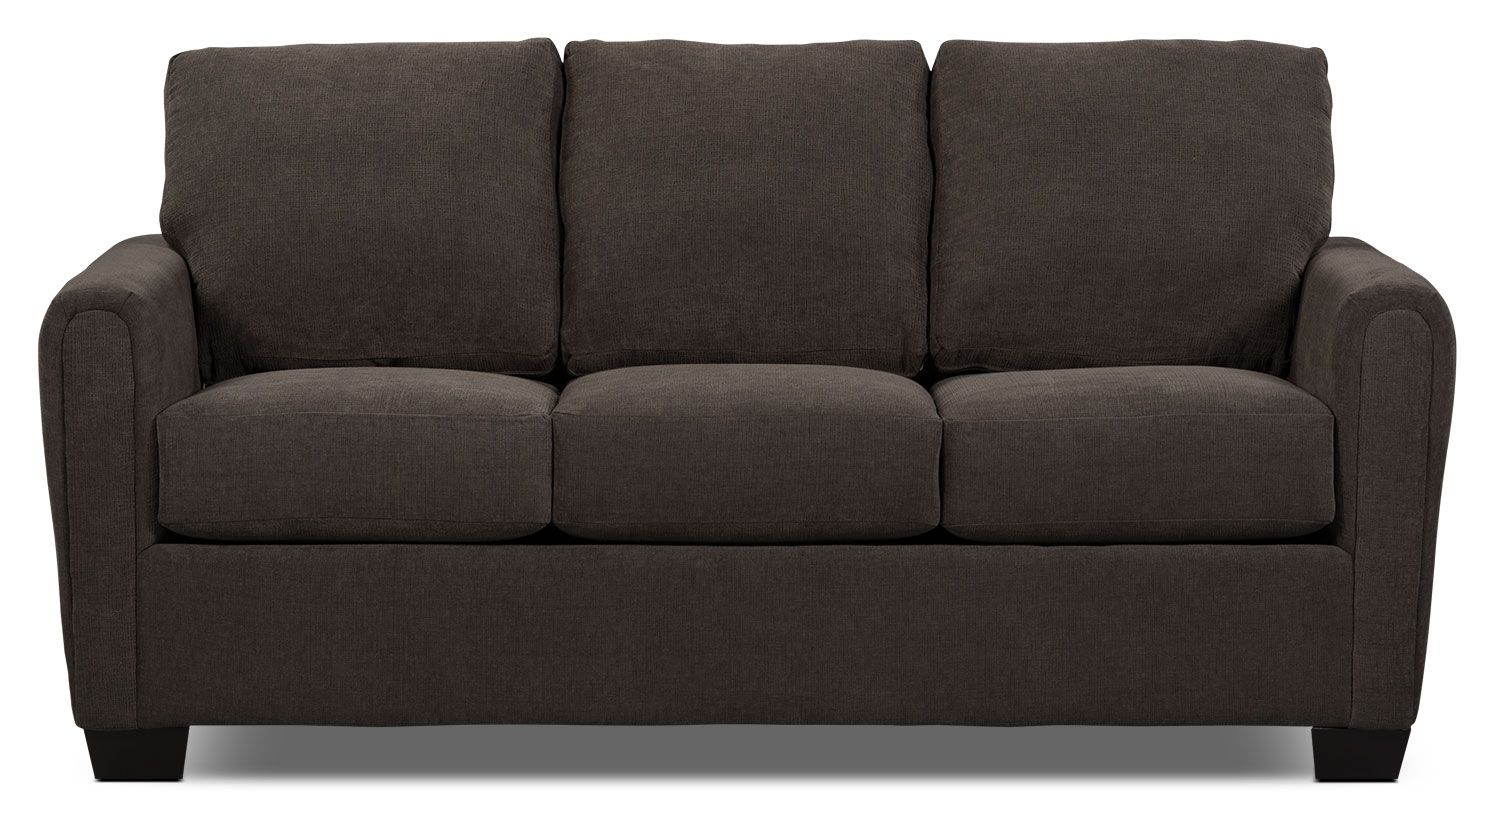 Sofa Bed With Memory Foam